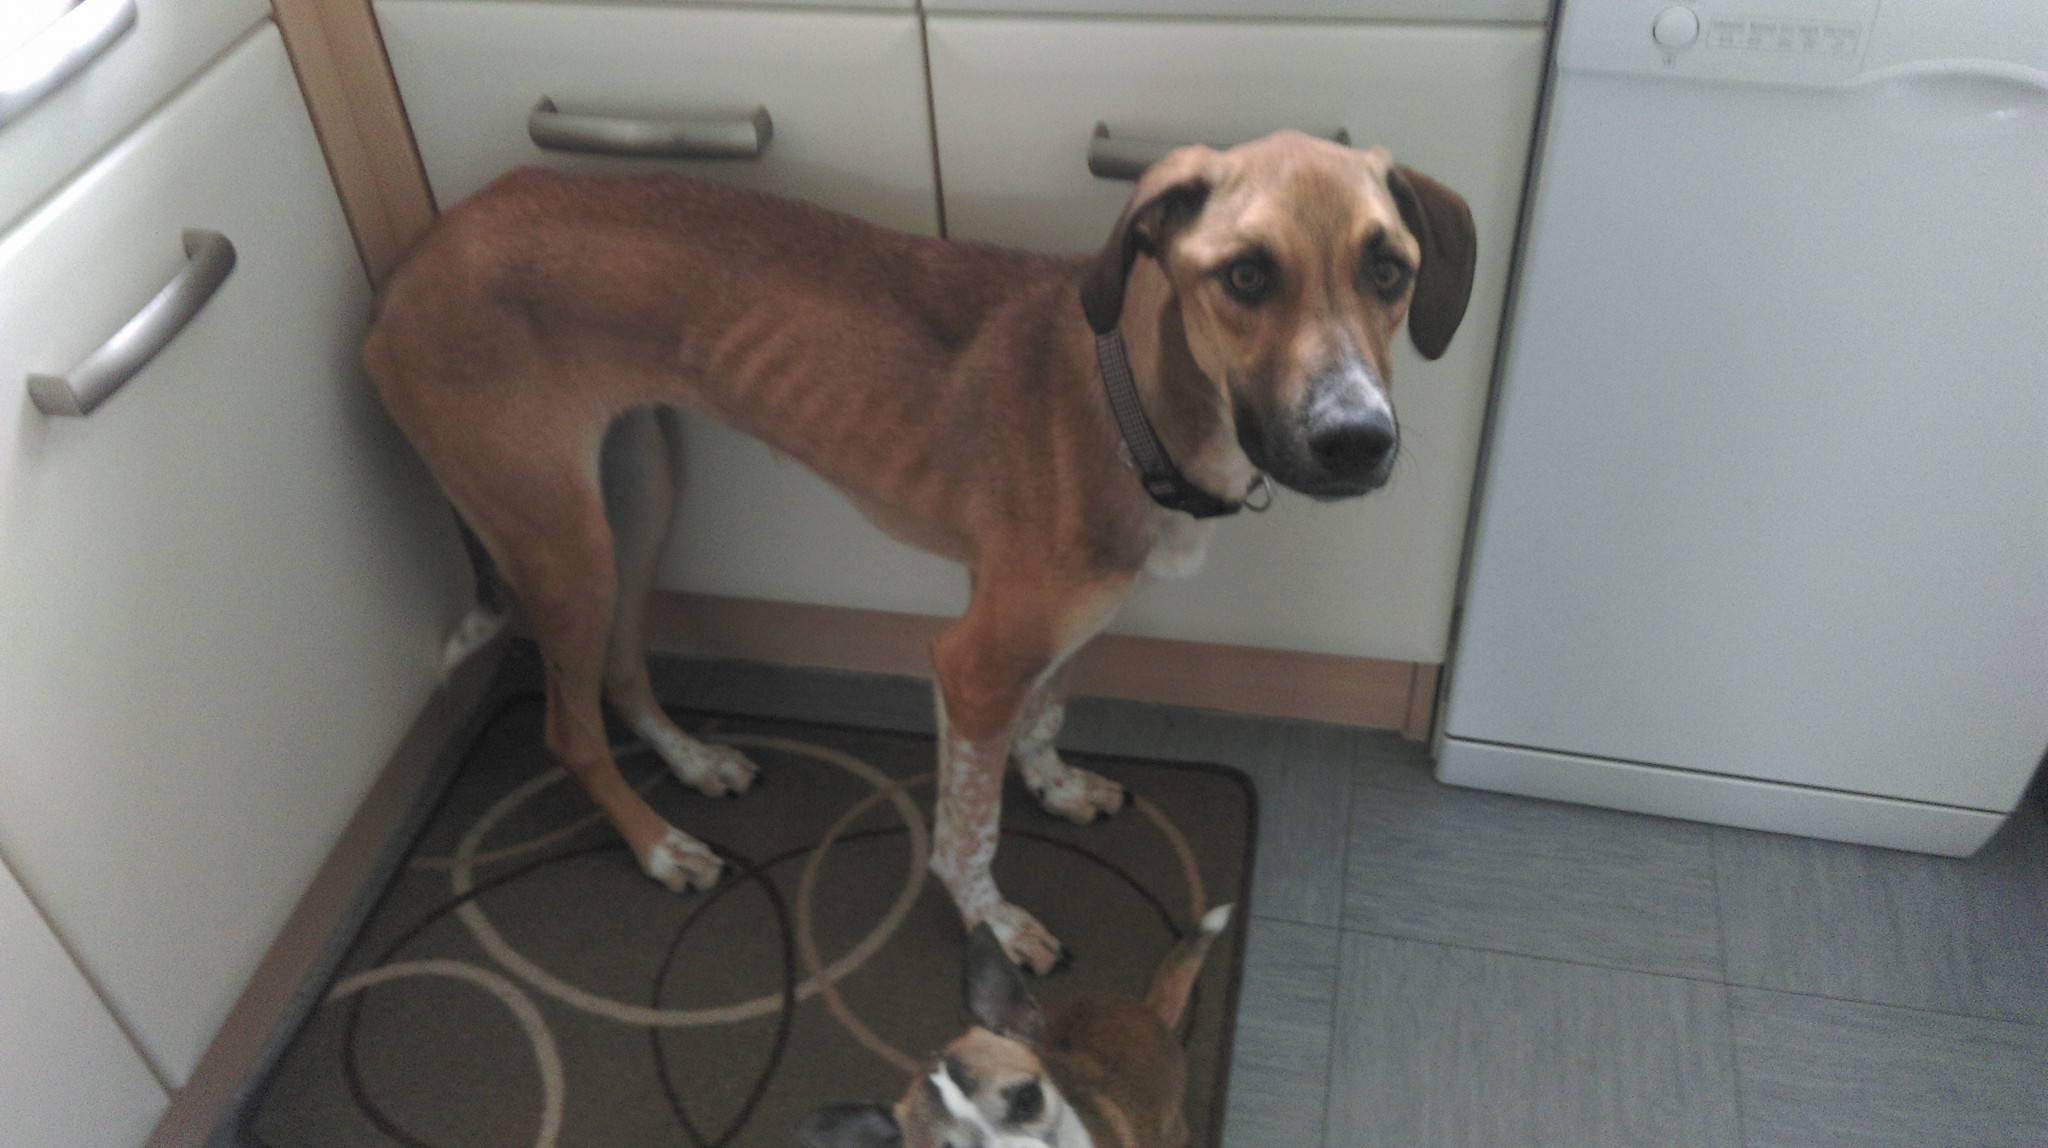 Lucy has become severely underweight due to losing her appetite as a result of her illness.